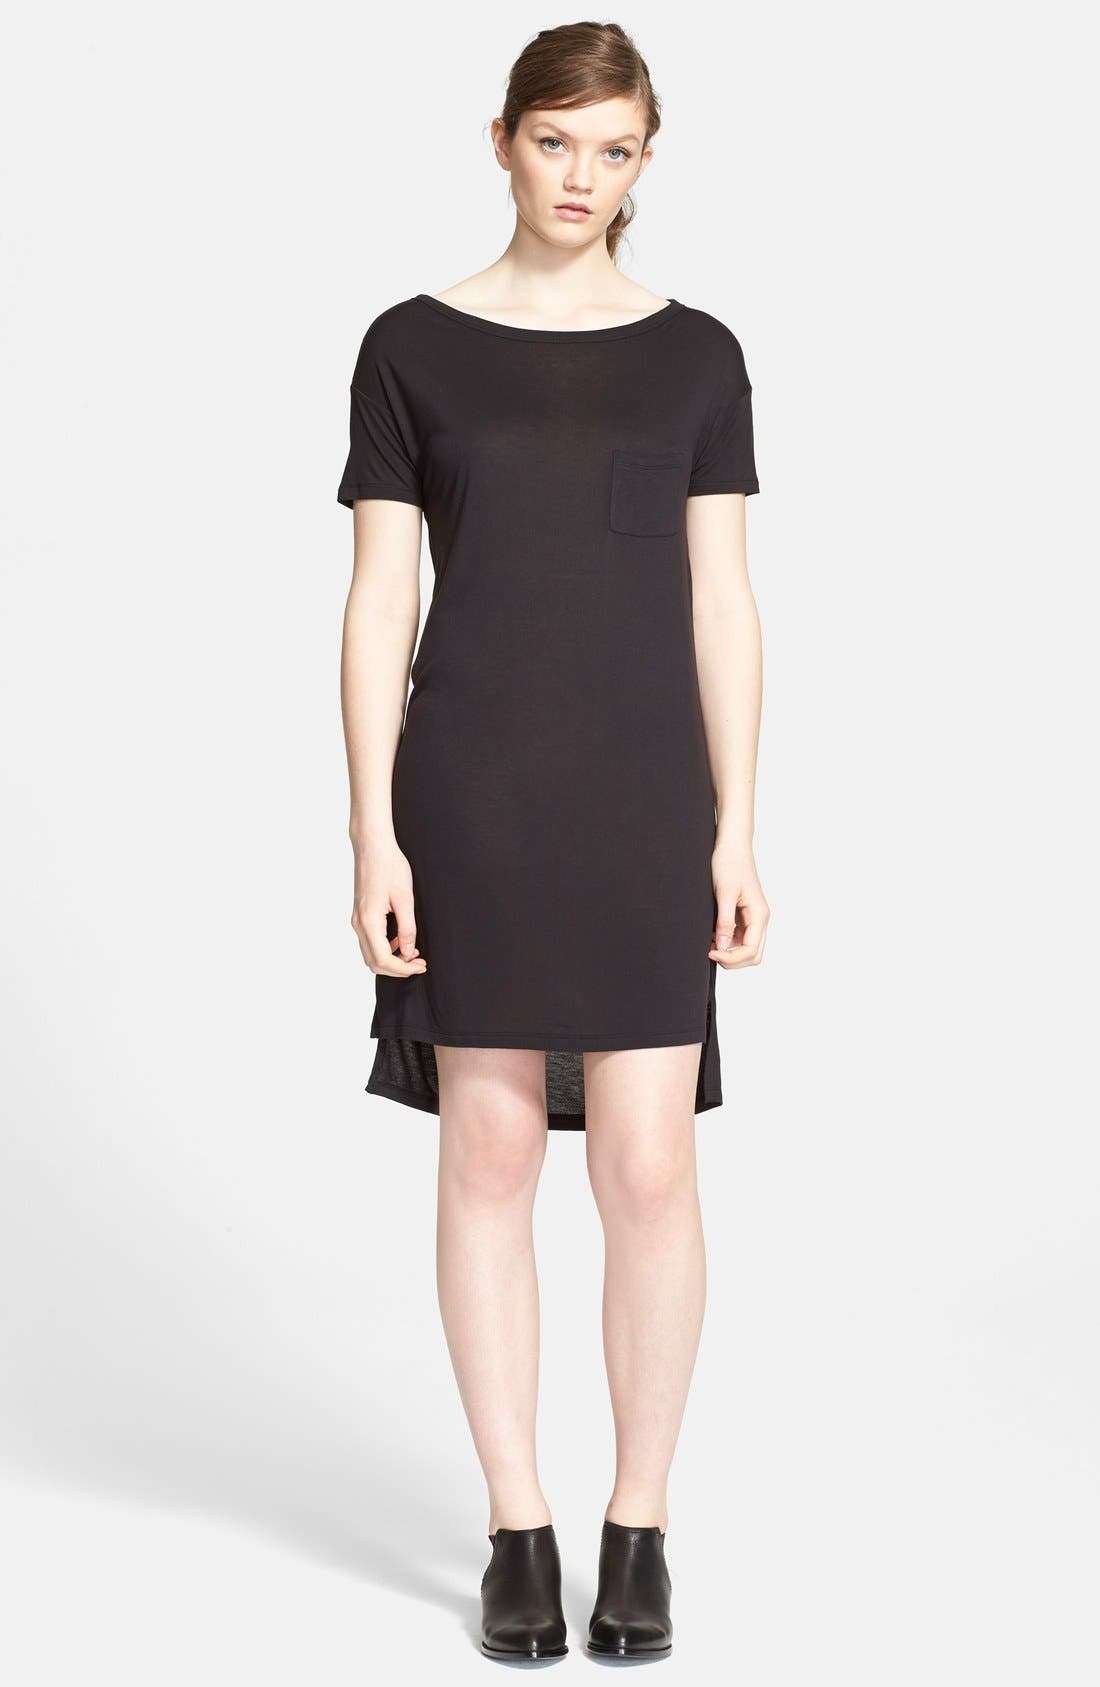 Alternate Image 1 Selected - T by Alexander Wang Jersey Dress